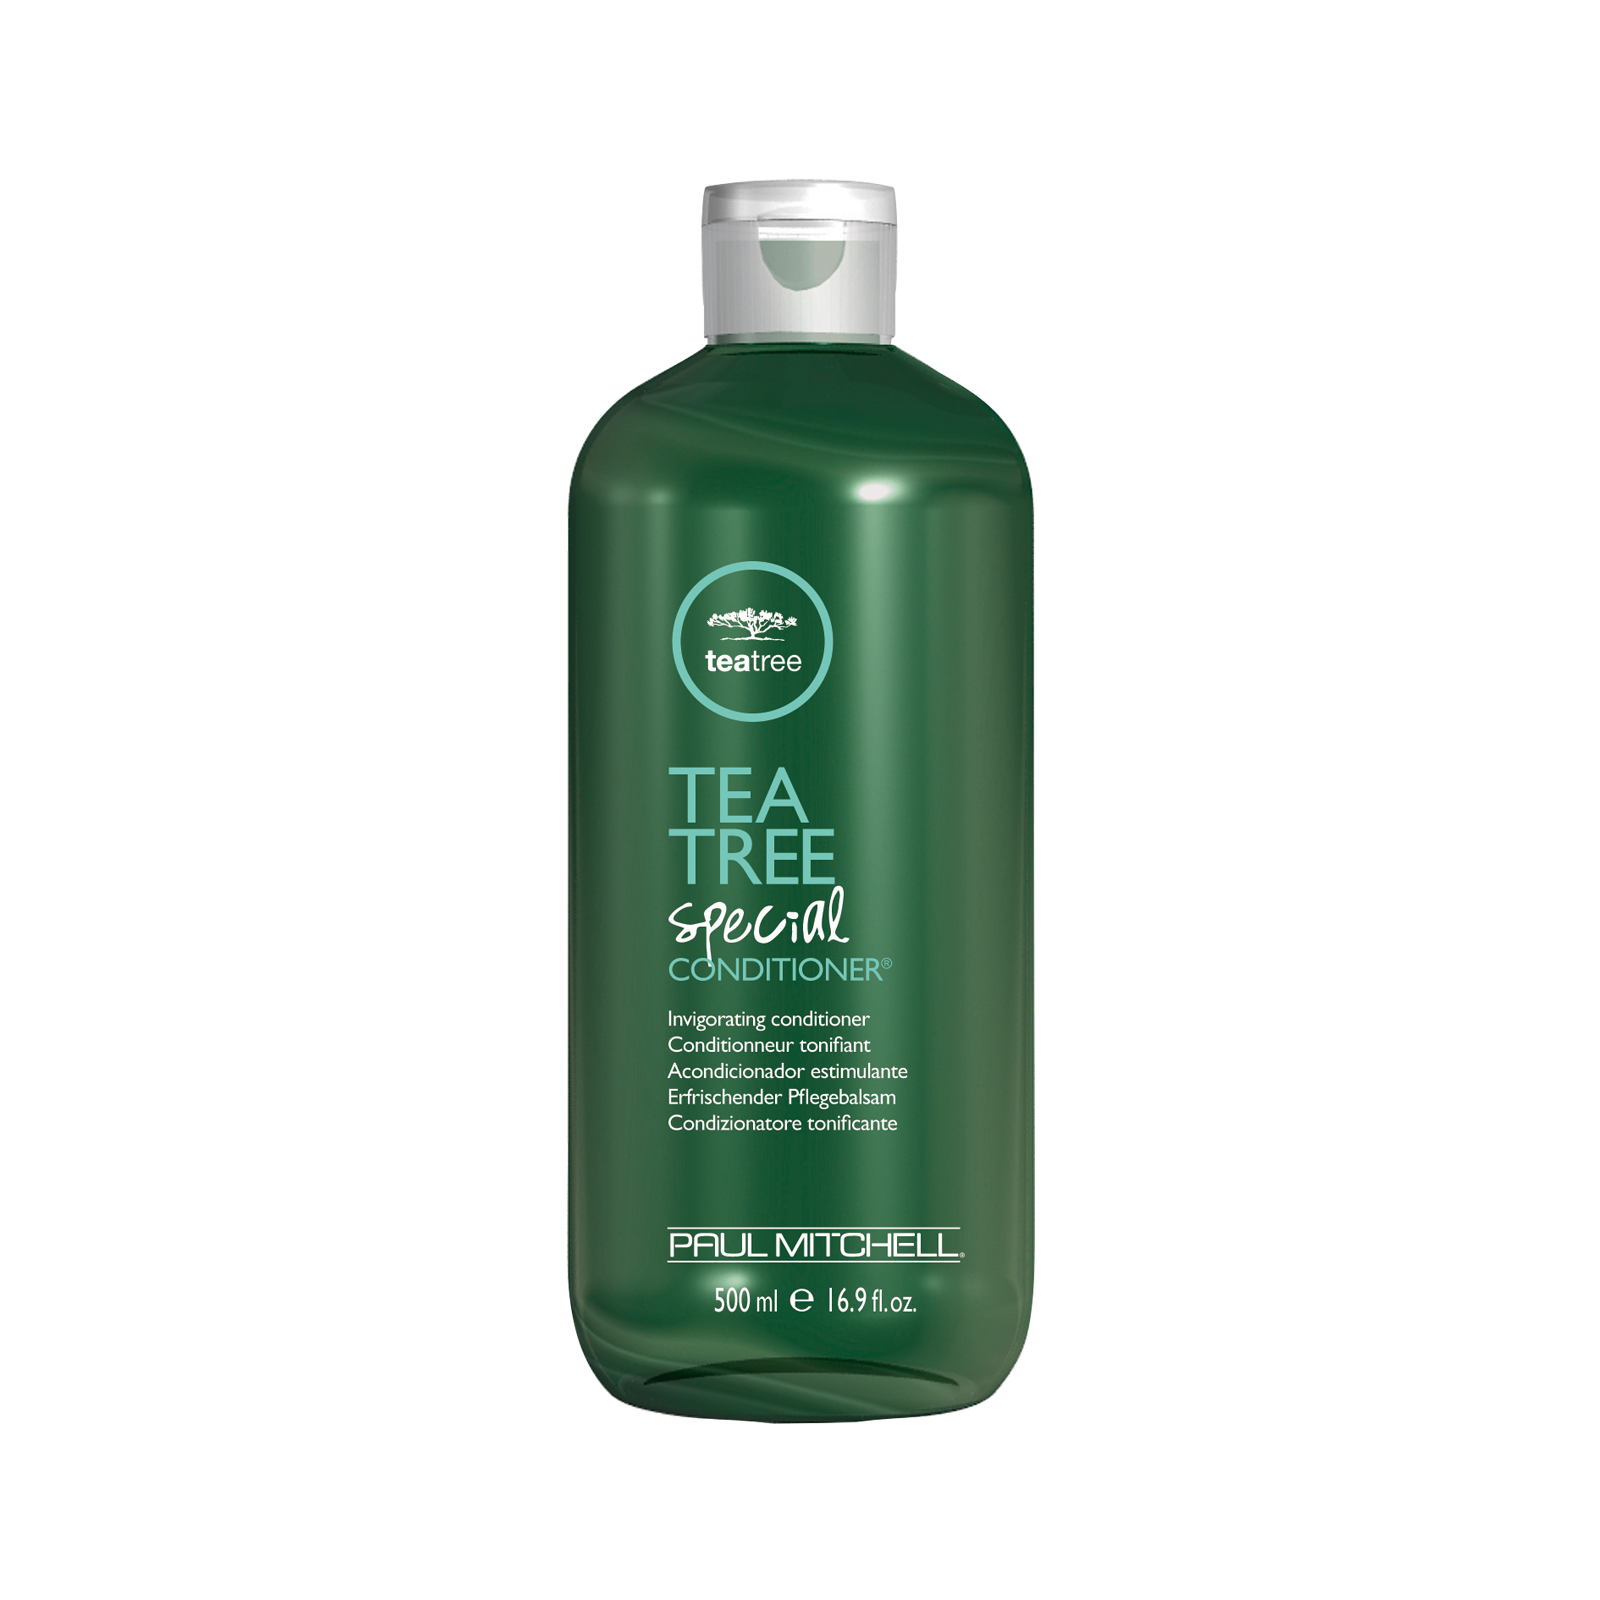 Paul Mitchell Systems Tea Tree - Special Shampoo Conditioner 16.90 oz Duo